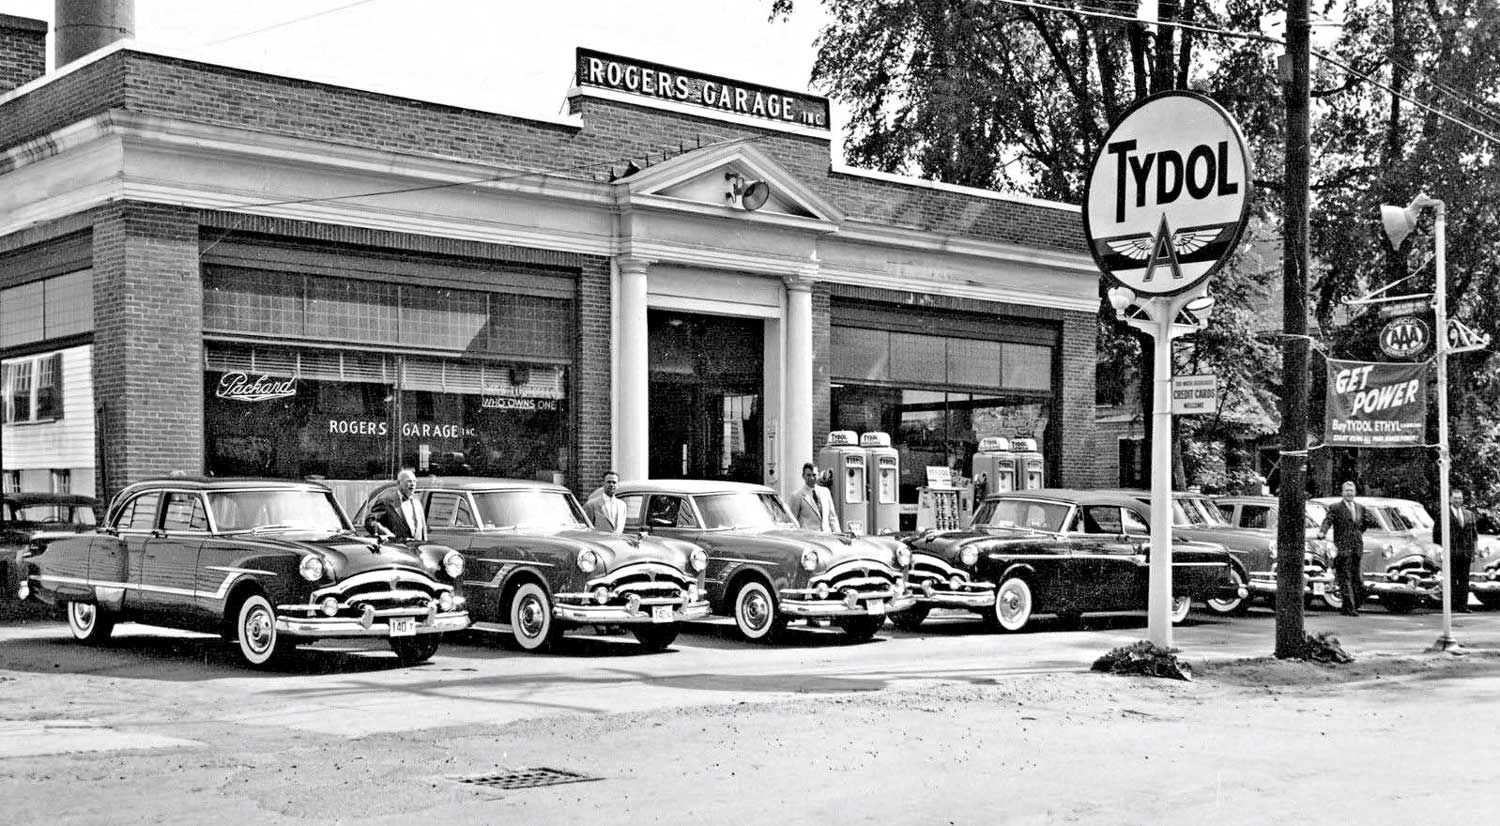 rogers garage packard sales and service hanover new hampshire the old motor car dealership packard cars old gas stations pinterest